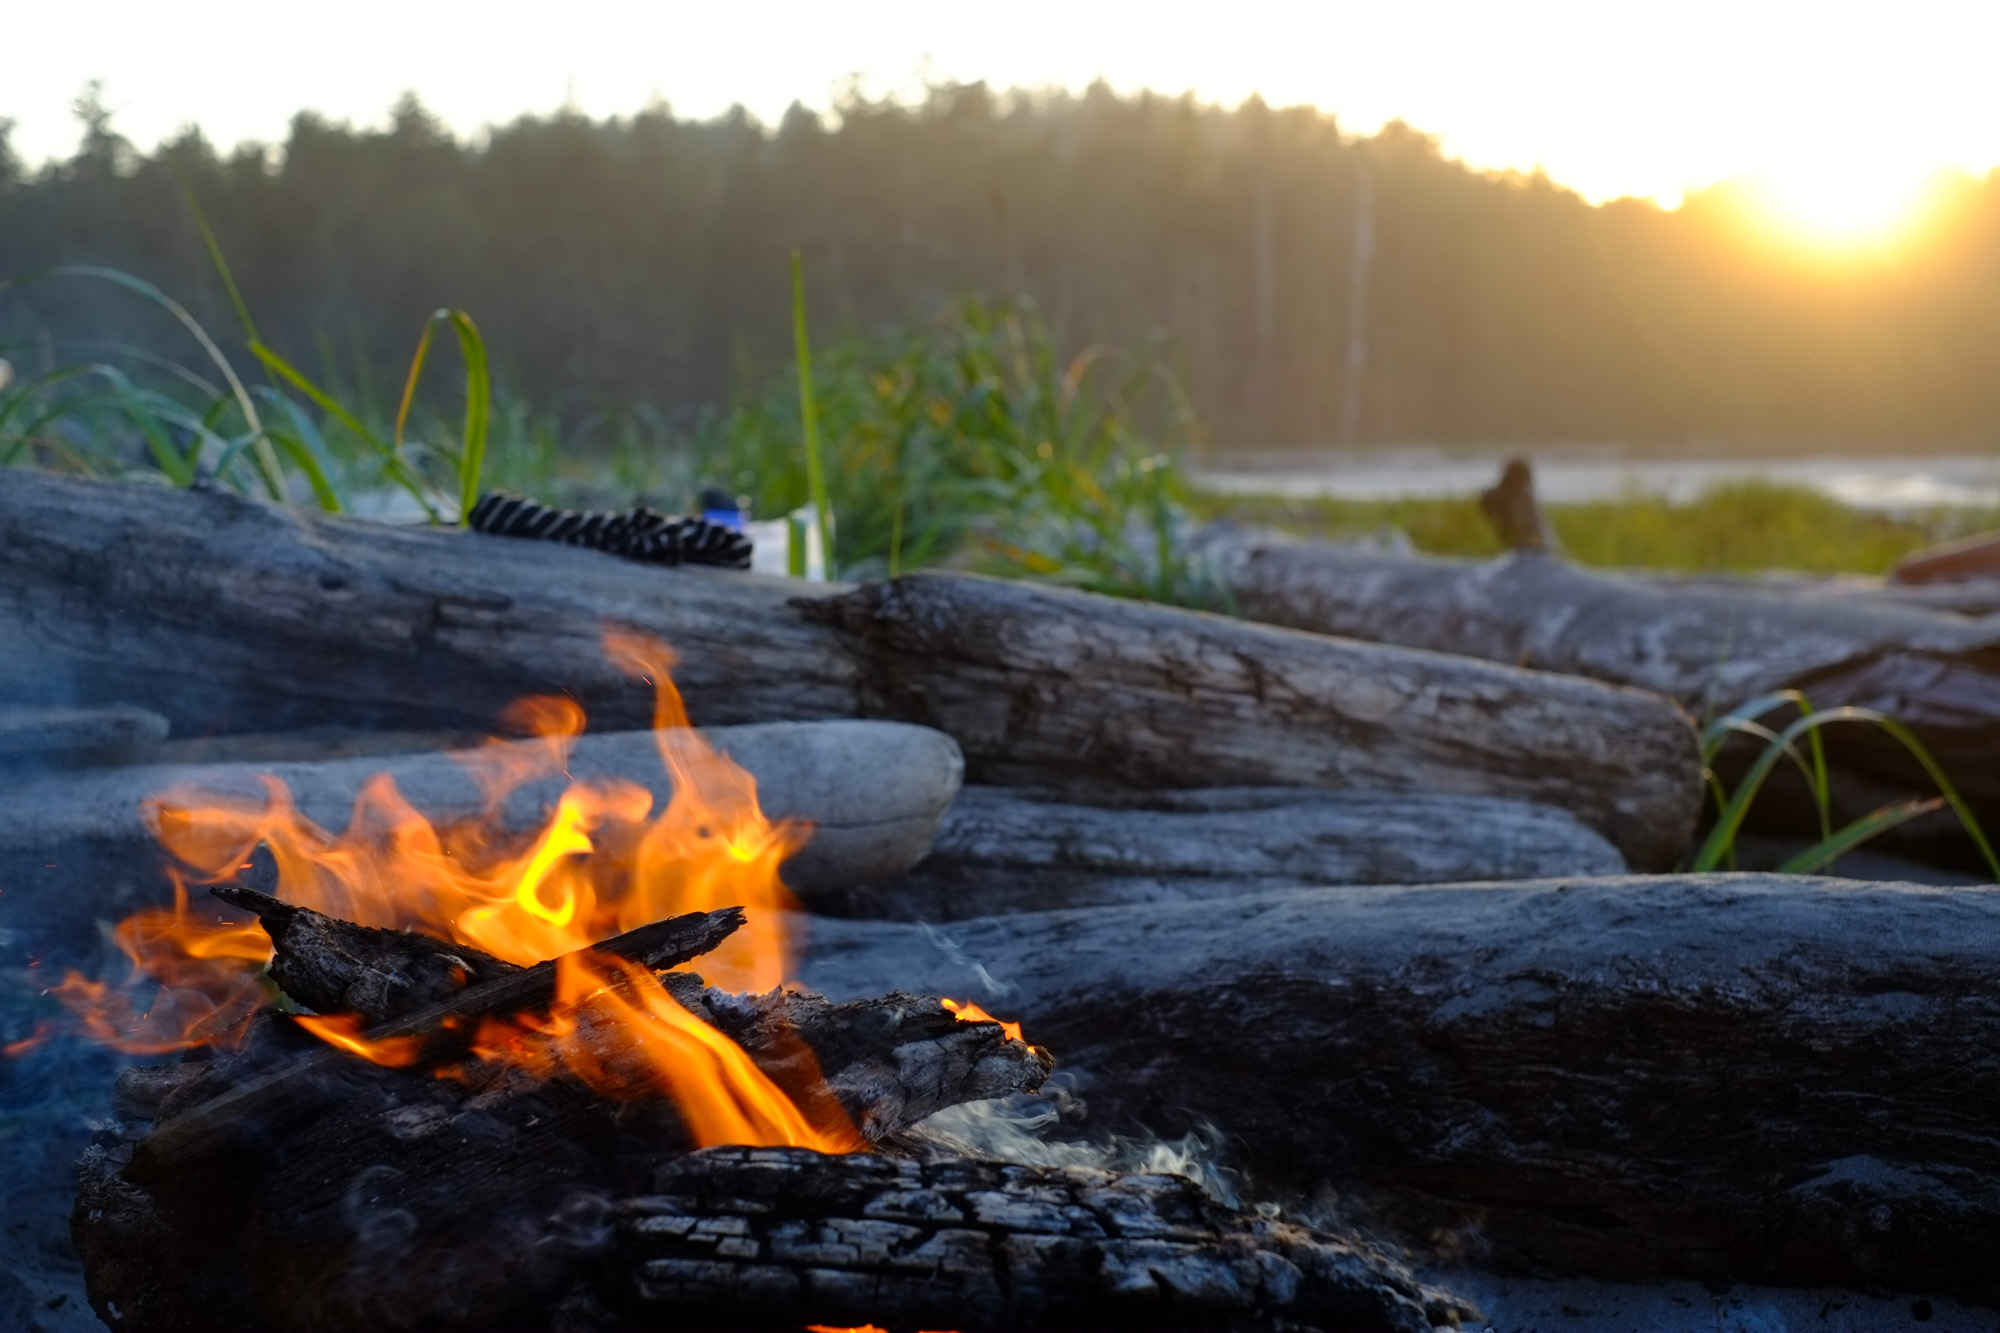 Fires burns at the campsite on Nels Bight.